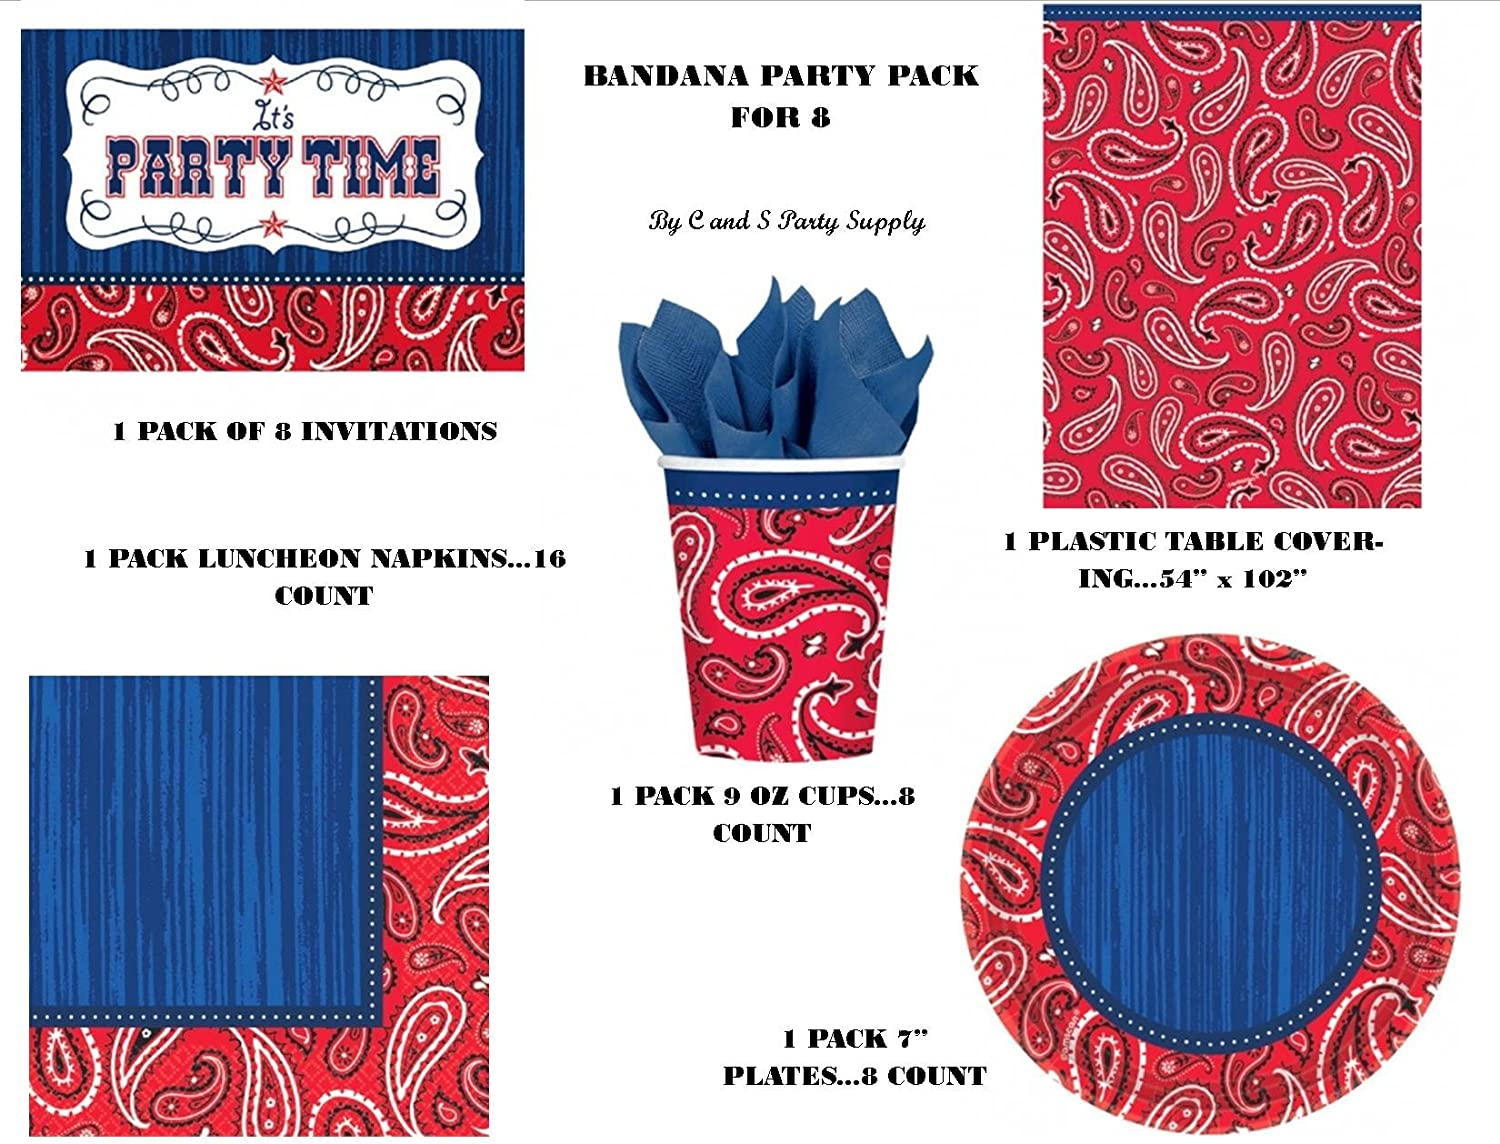 Blue Bandana Cowboy Western Theme Birthday Party Paper Luncheon Napkins